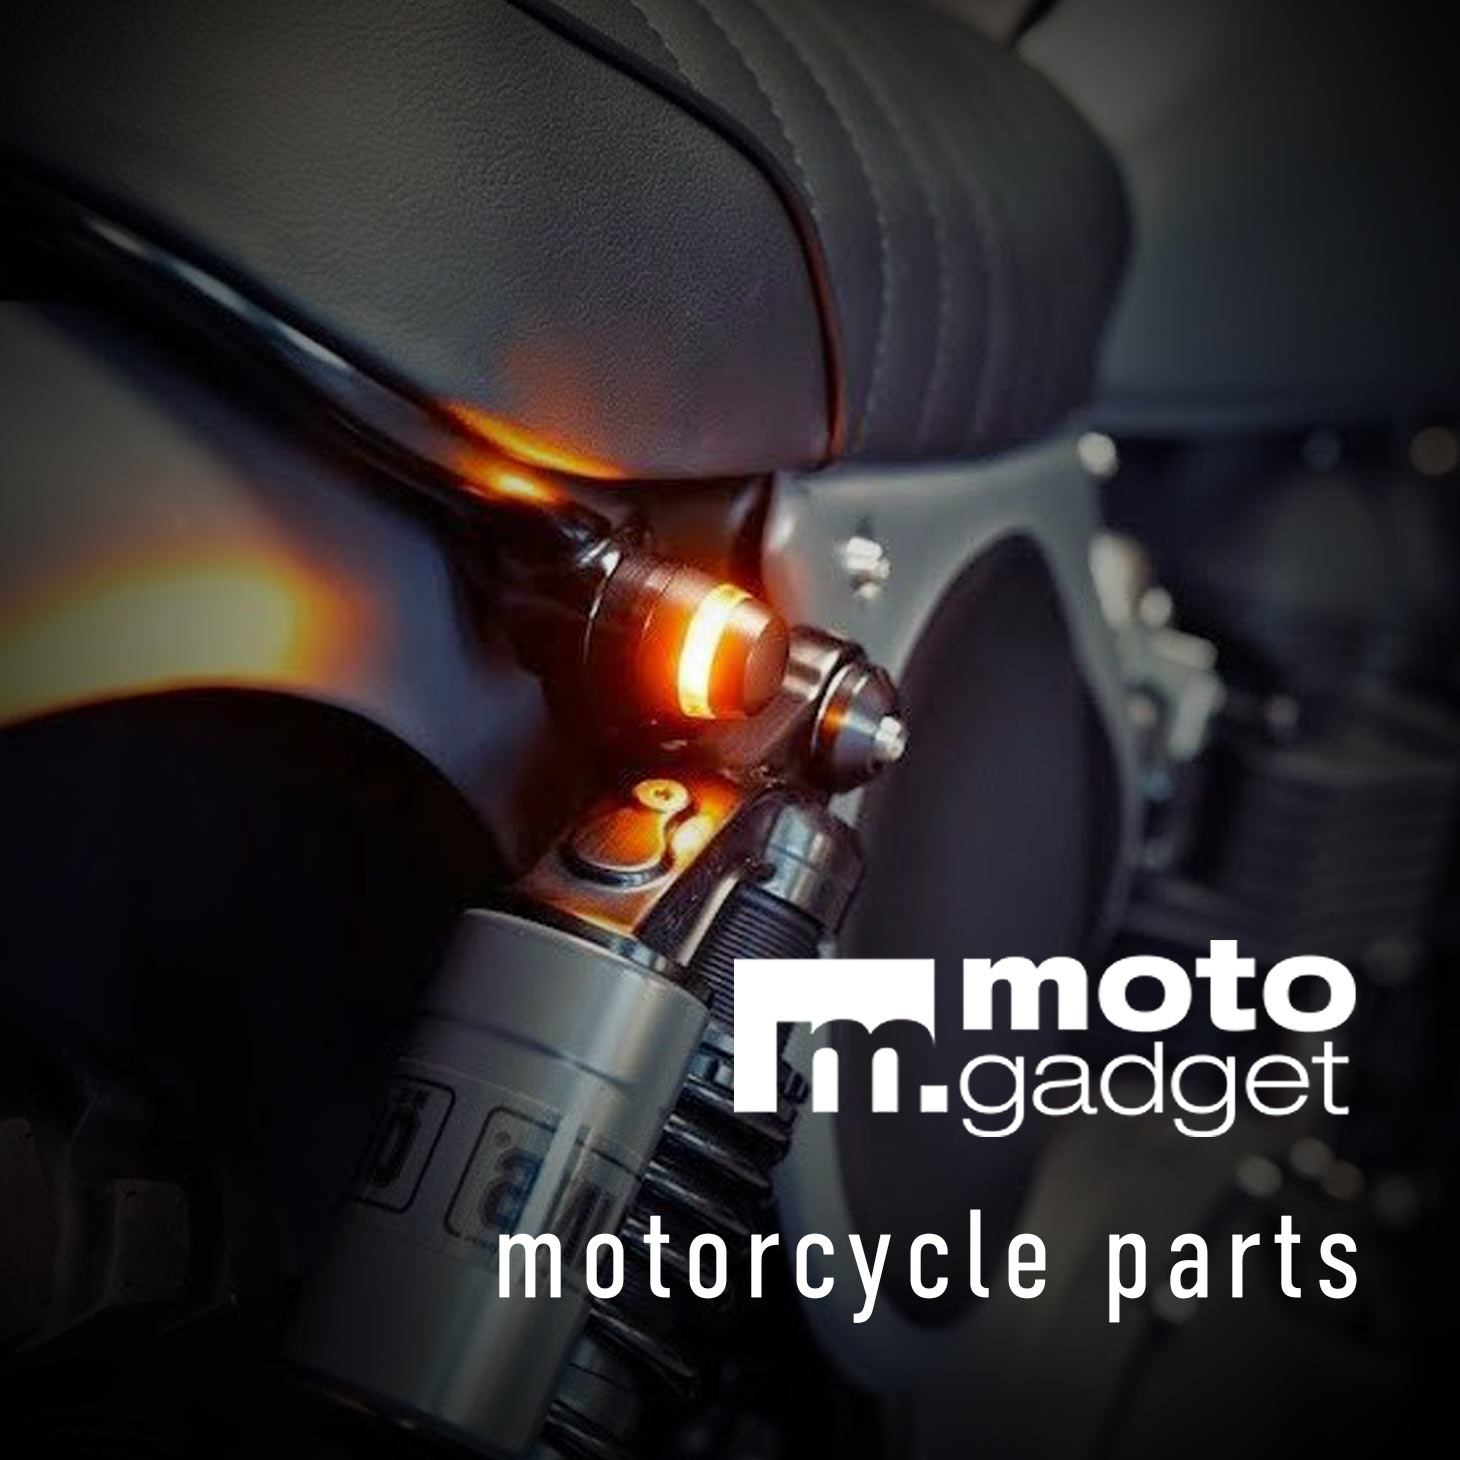 Motogadget Motorcycle indicators for cafe racers and custom bikes